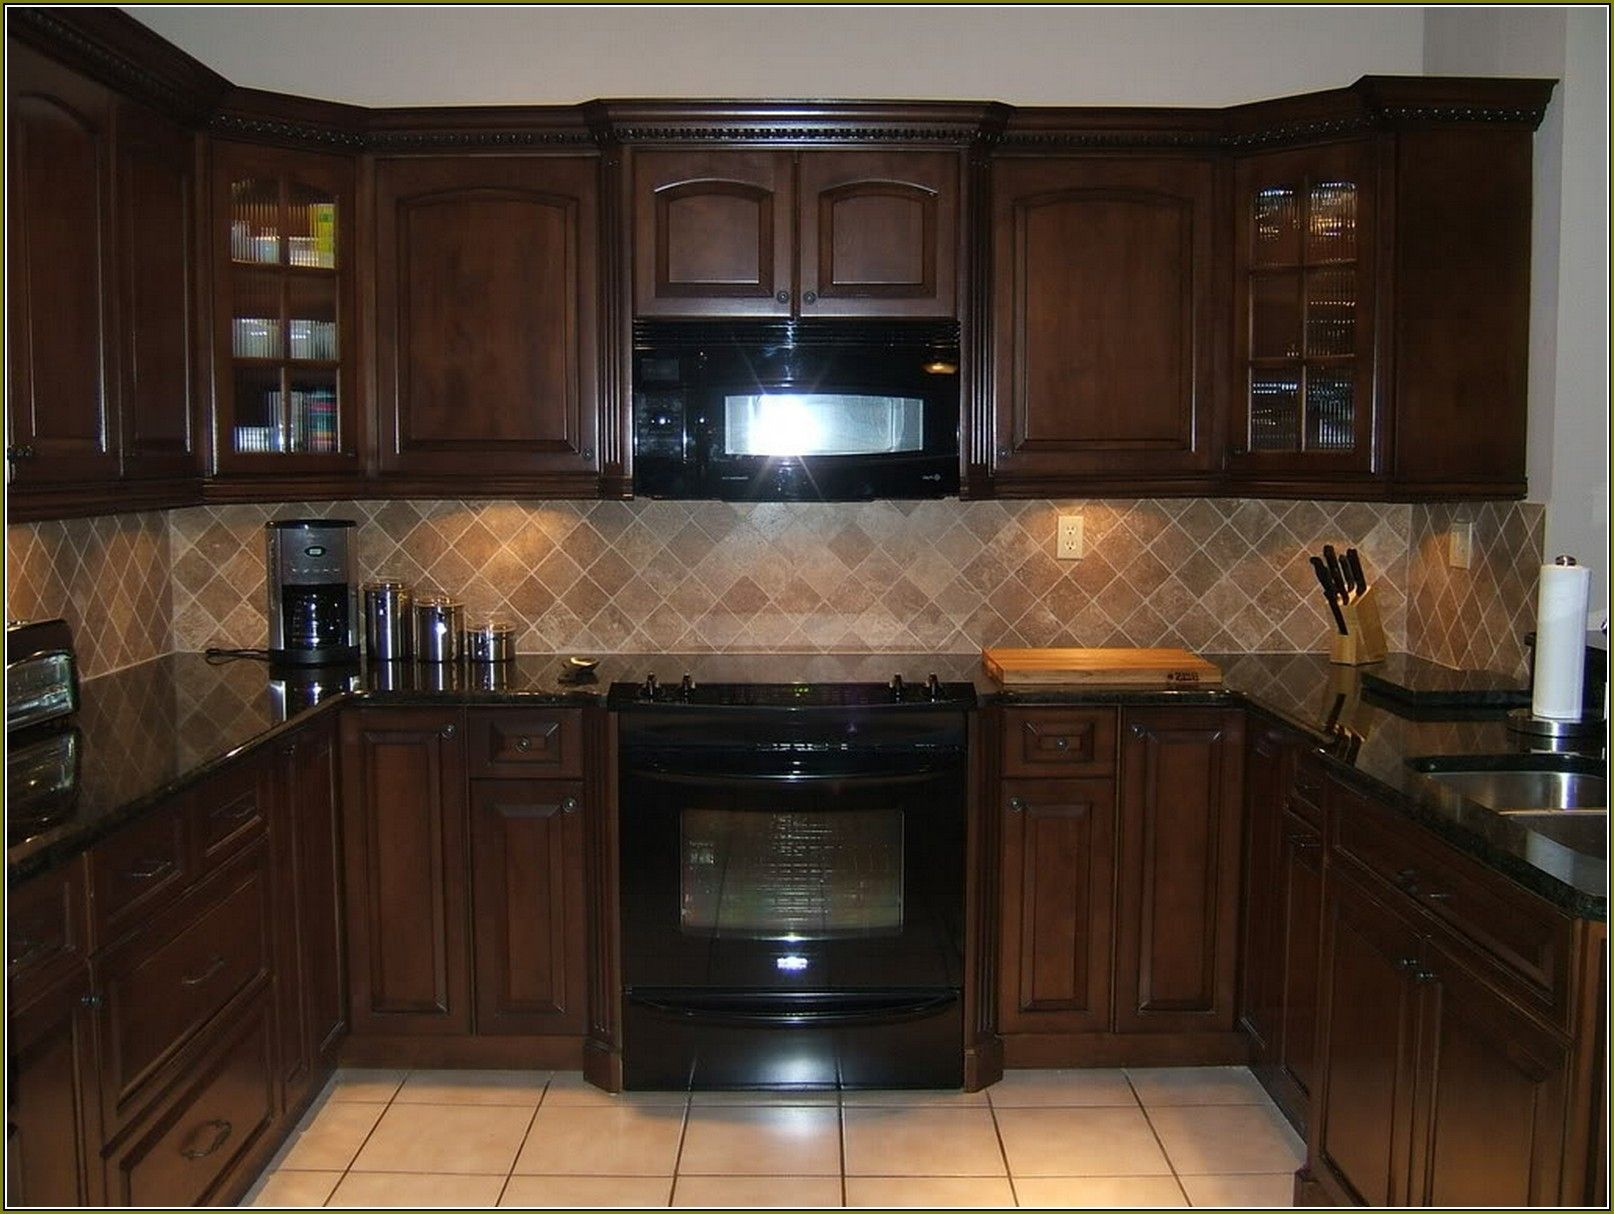 Walnut Kitchen Cabinets With Black Appliances Brown Kitchen Cabinets Black Appliances Kitchen Brown Kitchens